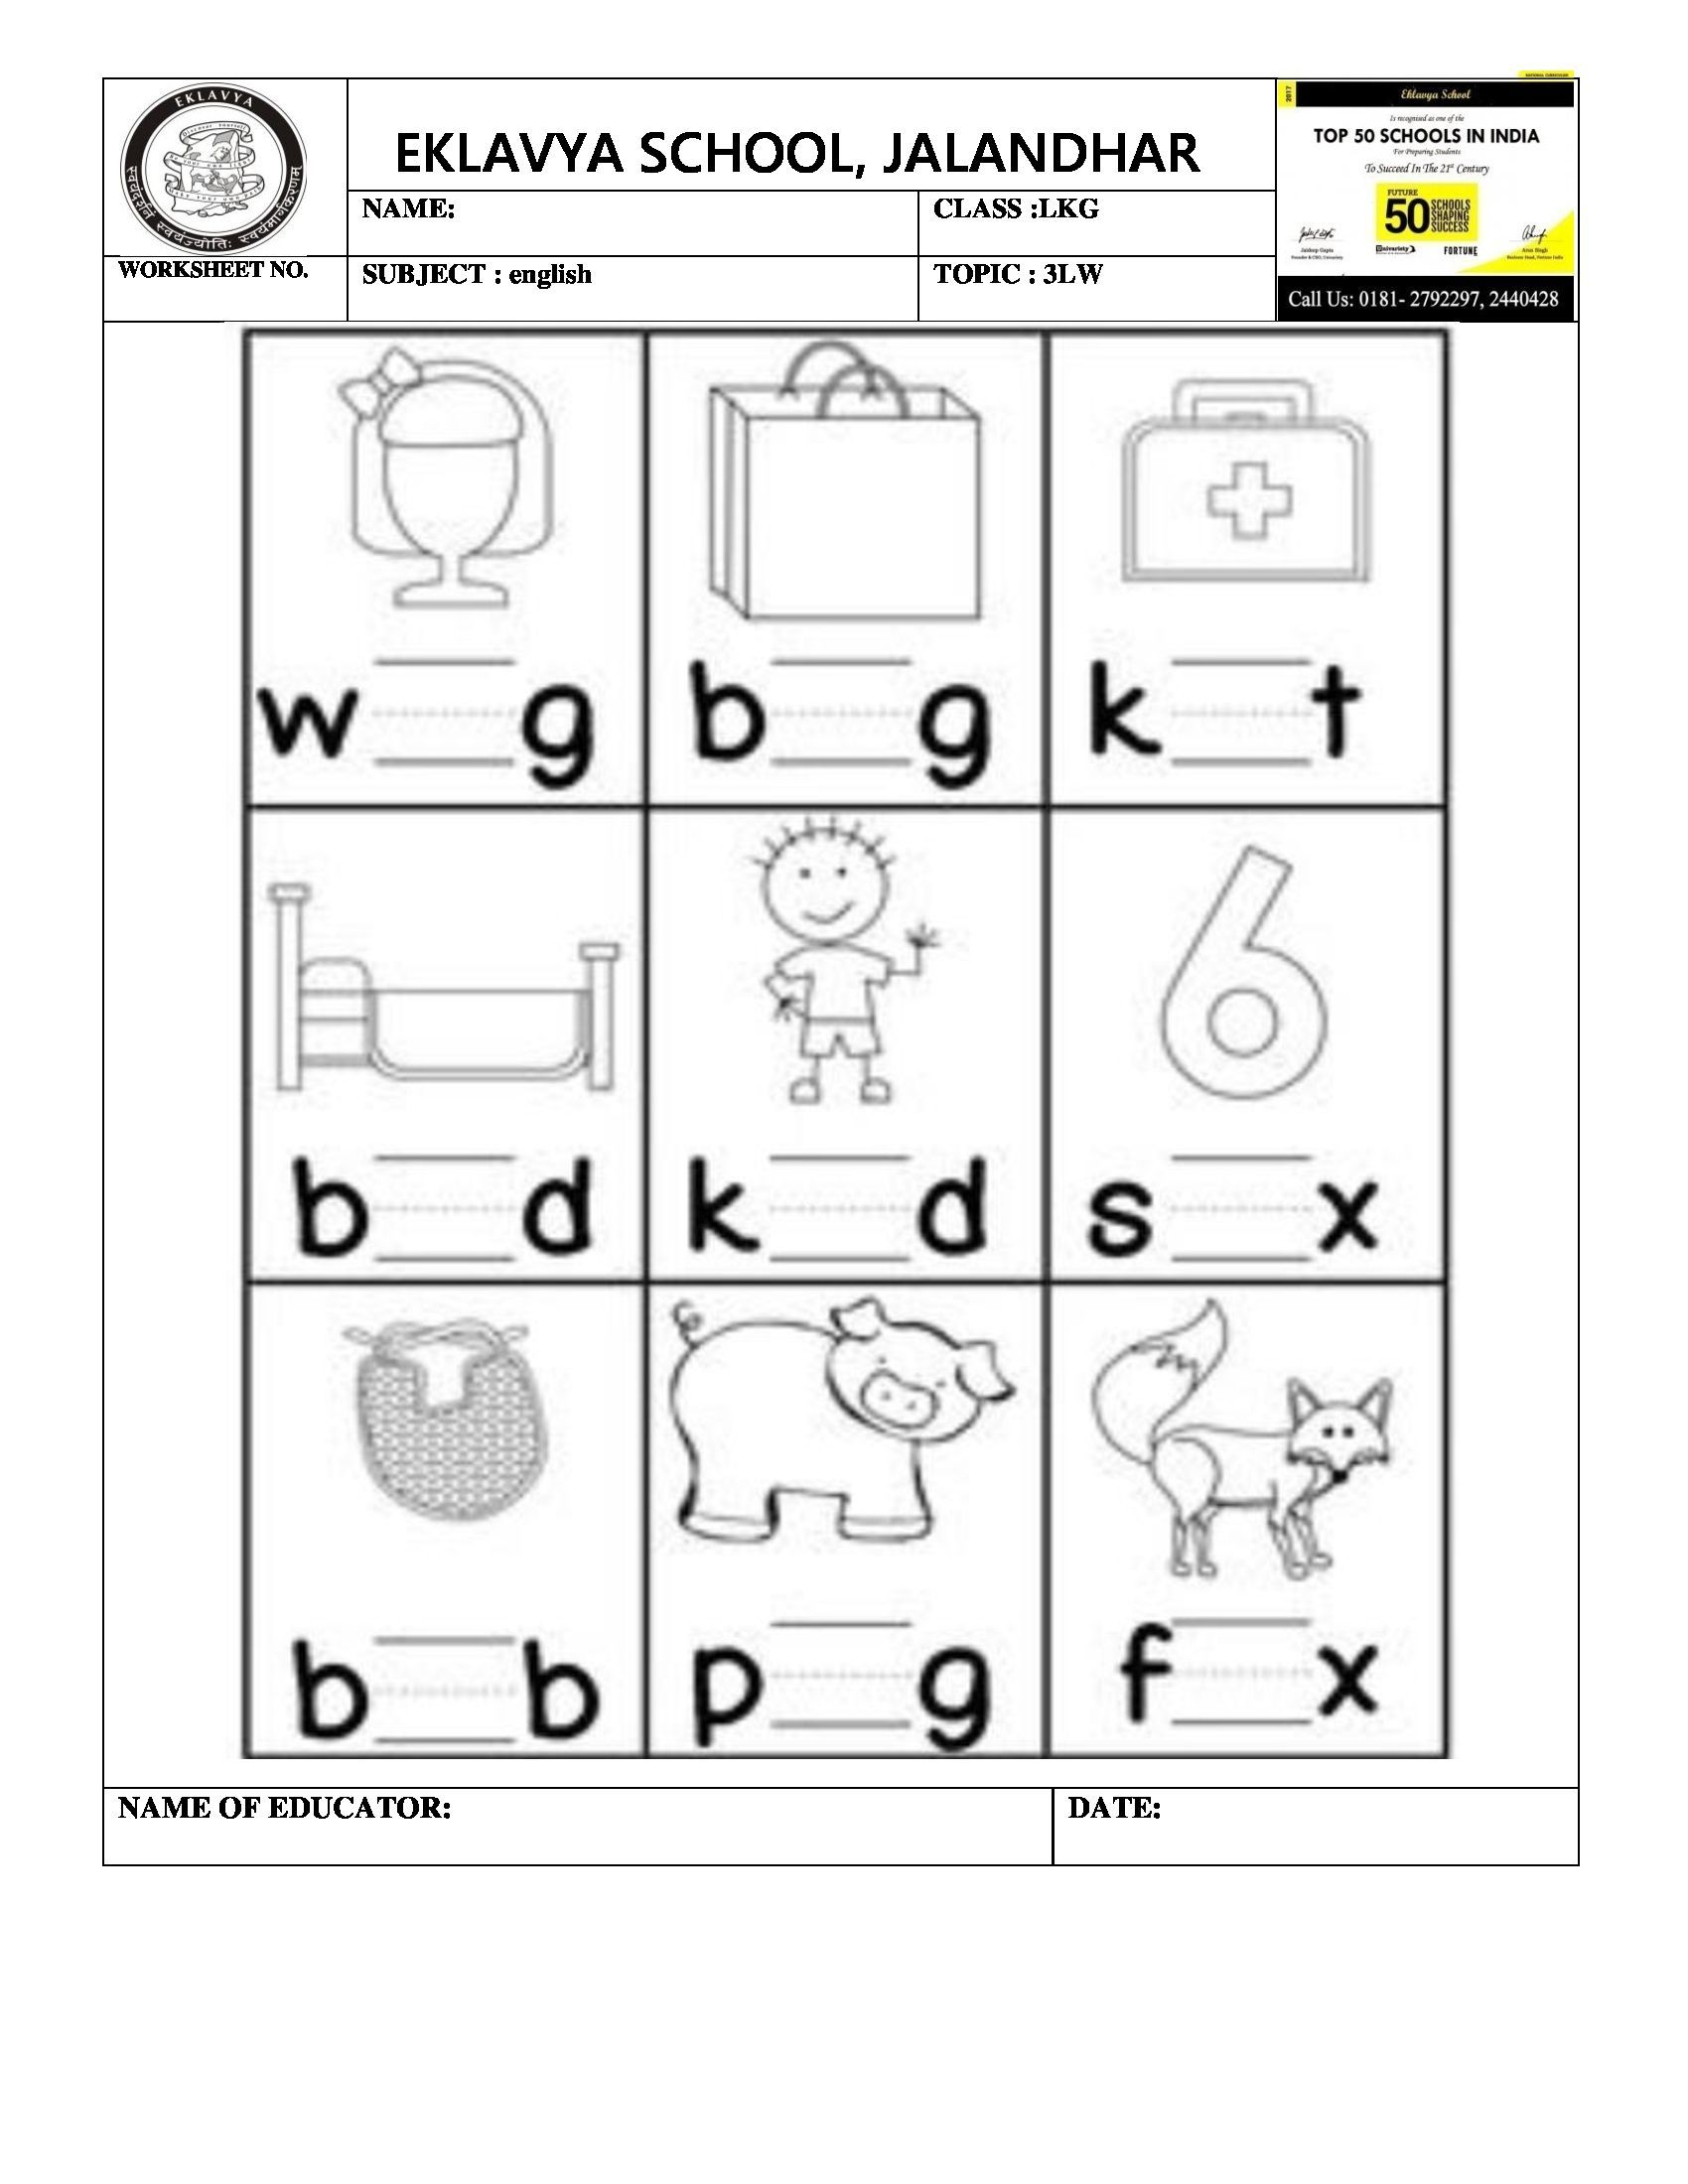 Worksheet On Three Letter Words I In The Middle Three Letter Words 3 Letter Words Wor In 2021 Three Letter Words Word Family Worksheets Letter Worksheets For Preschool [ 2200 x 1700 Pixel ]